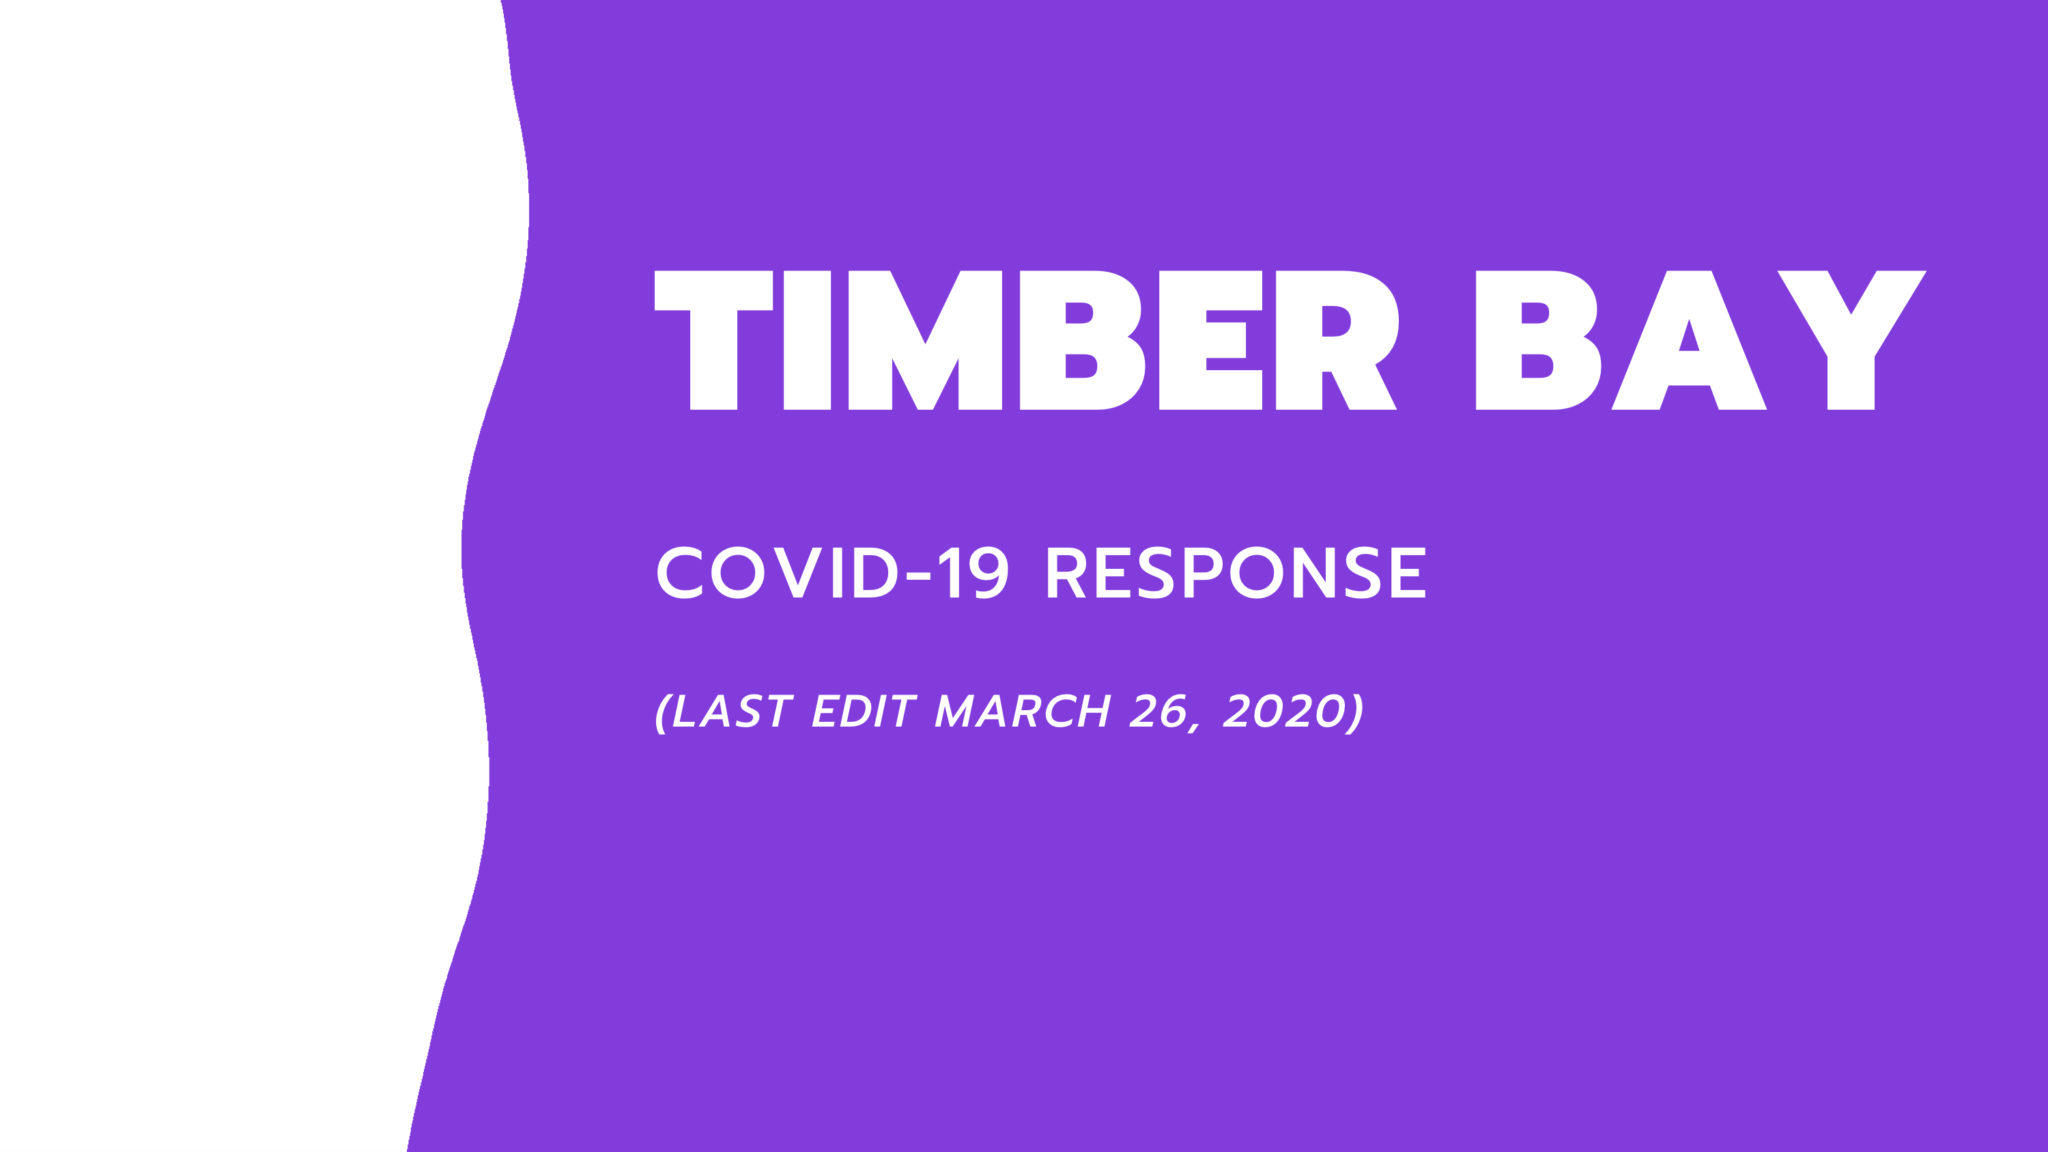 Timber bay COVID-19 Plan